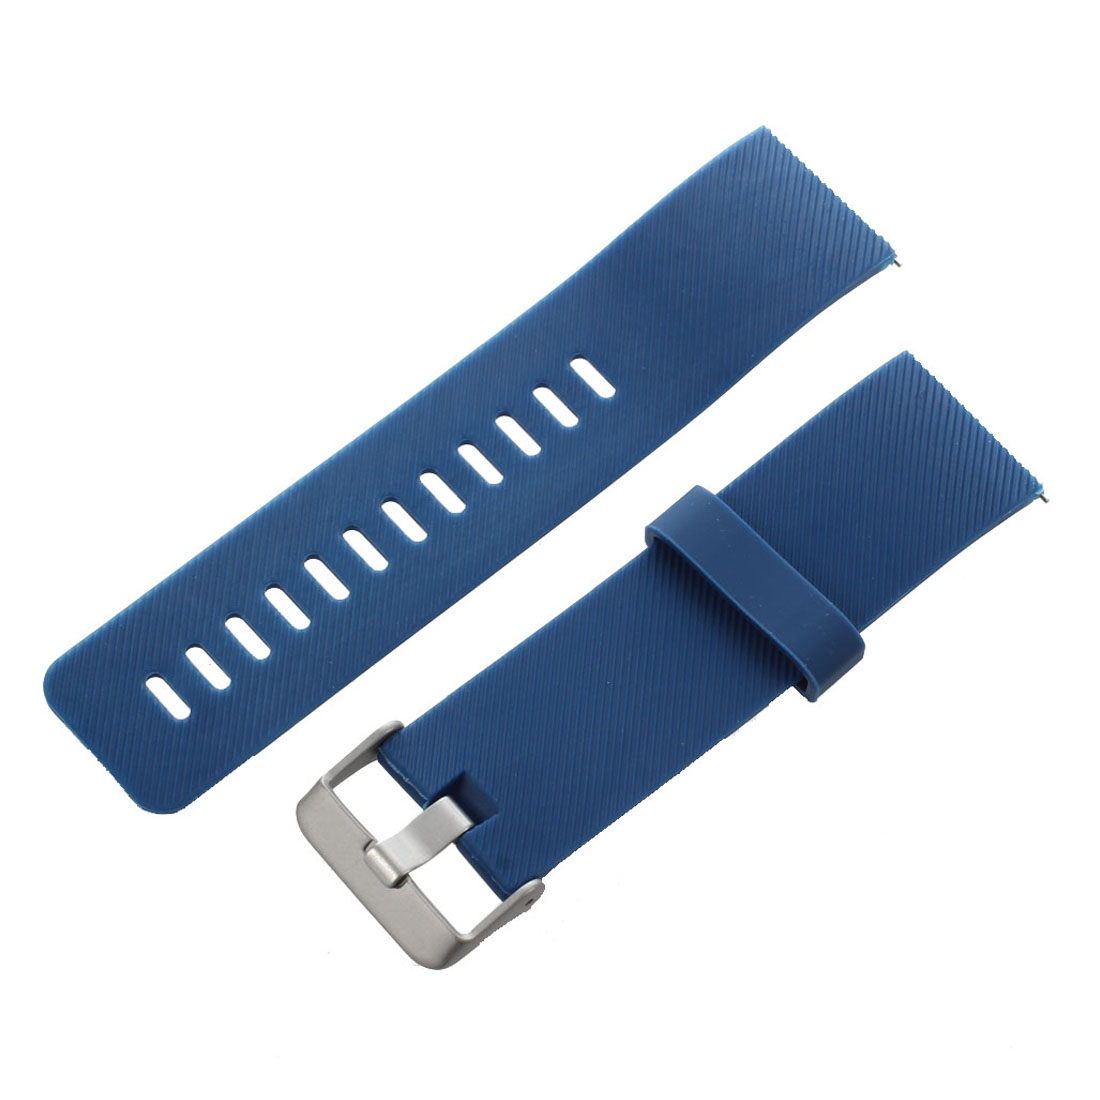 Practical Luxury Soft Silicone Watch Band Wrist Strap For Fitbit Blaze Smart Watch New